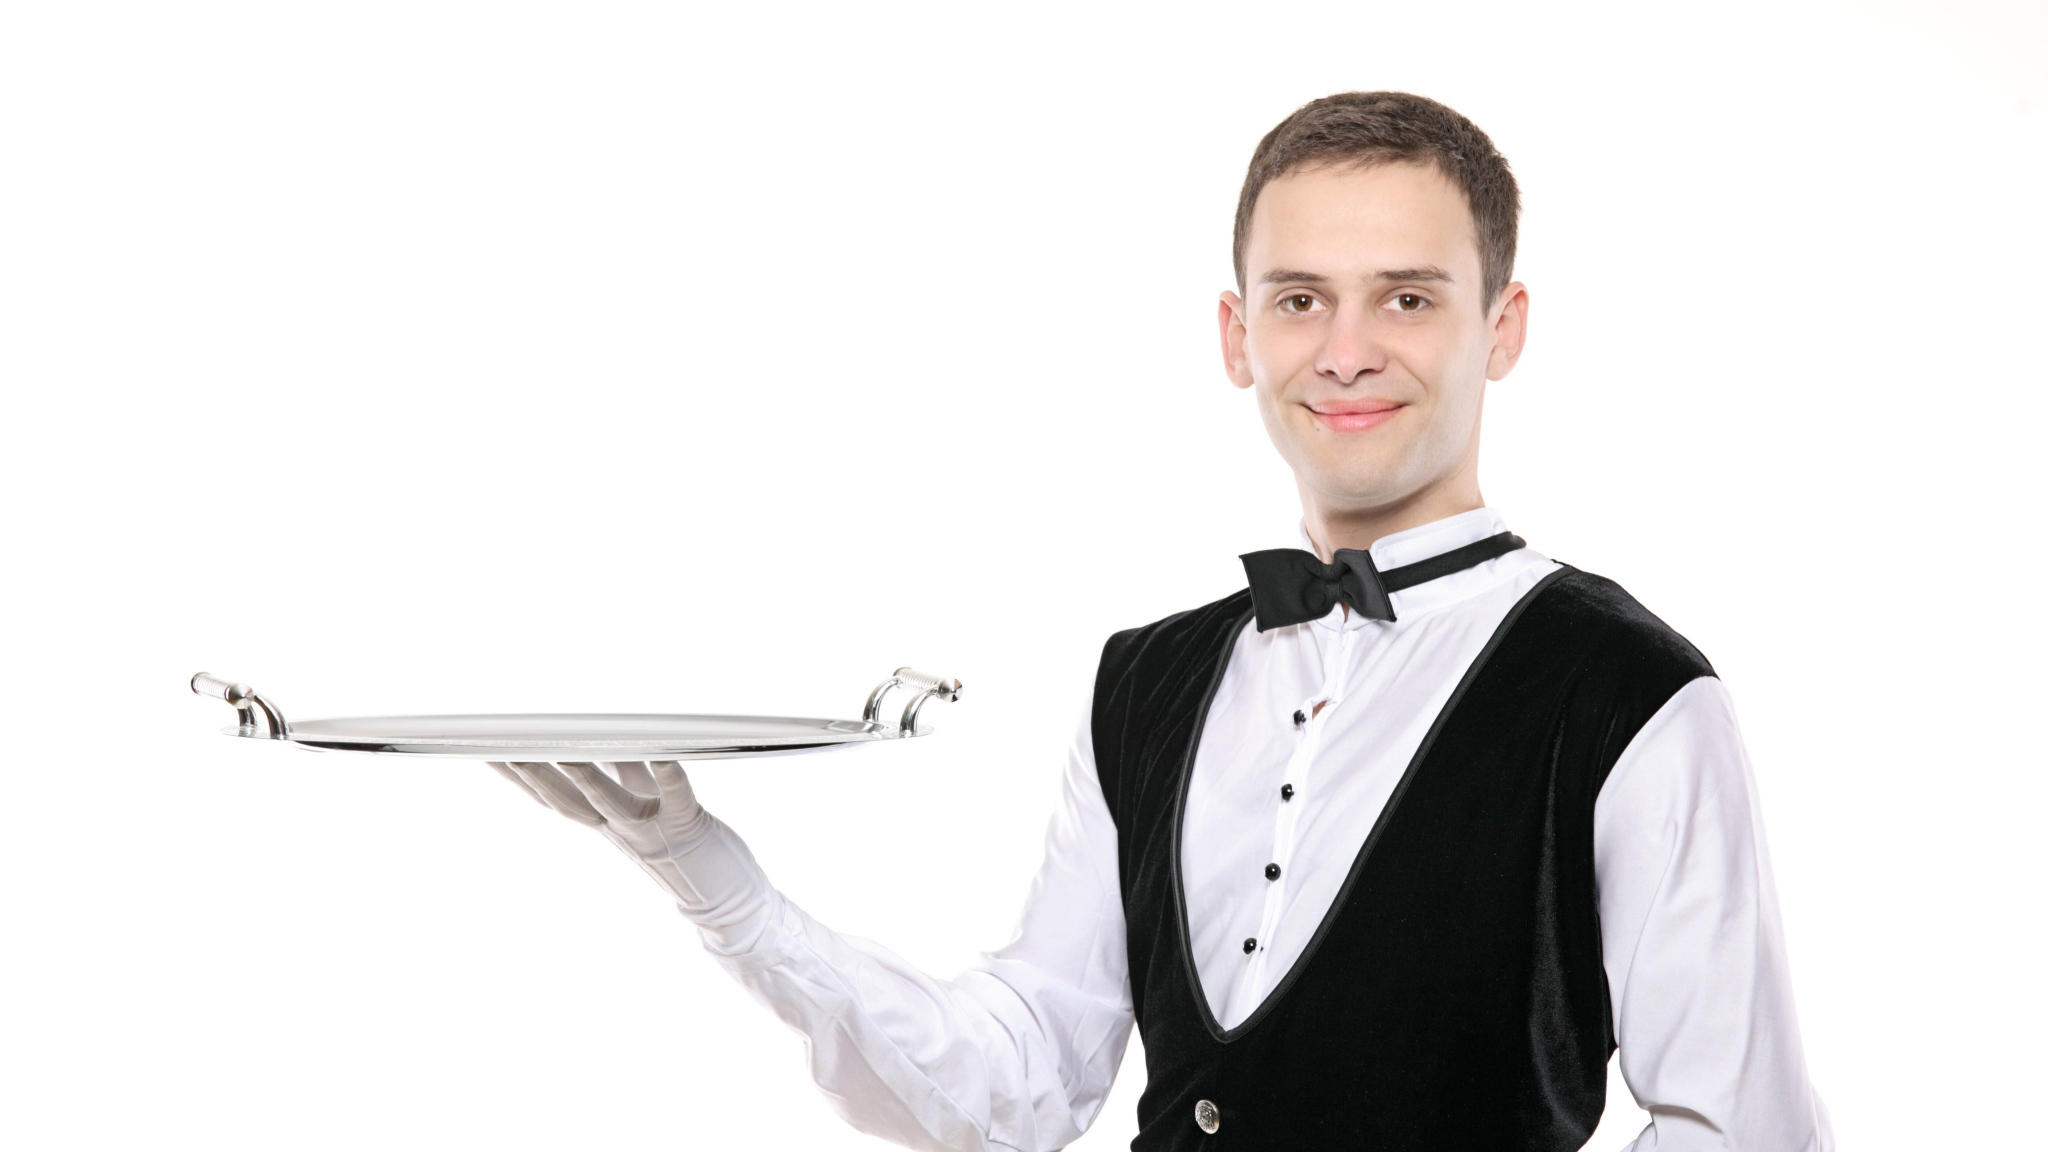 Waiter Jobs in Qatar